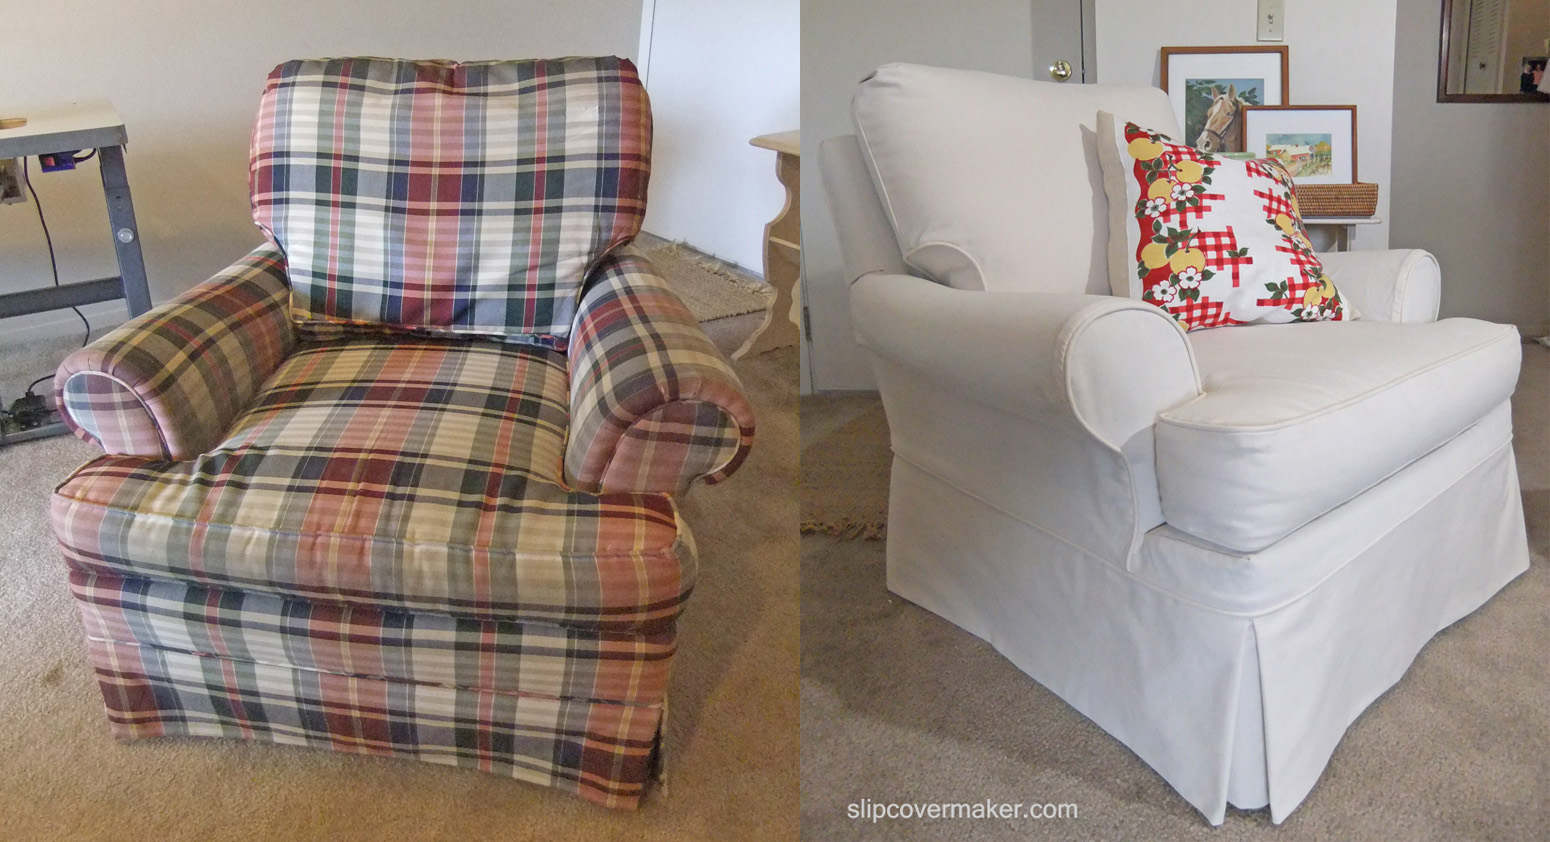 portfolio chair and ottoman the barbers custom slipcovers in natural canvas | slipcover maker